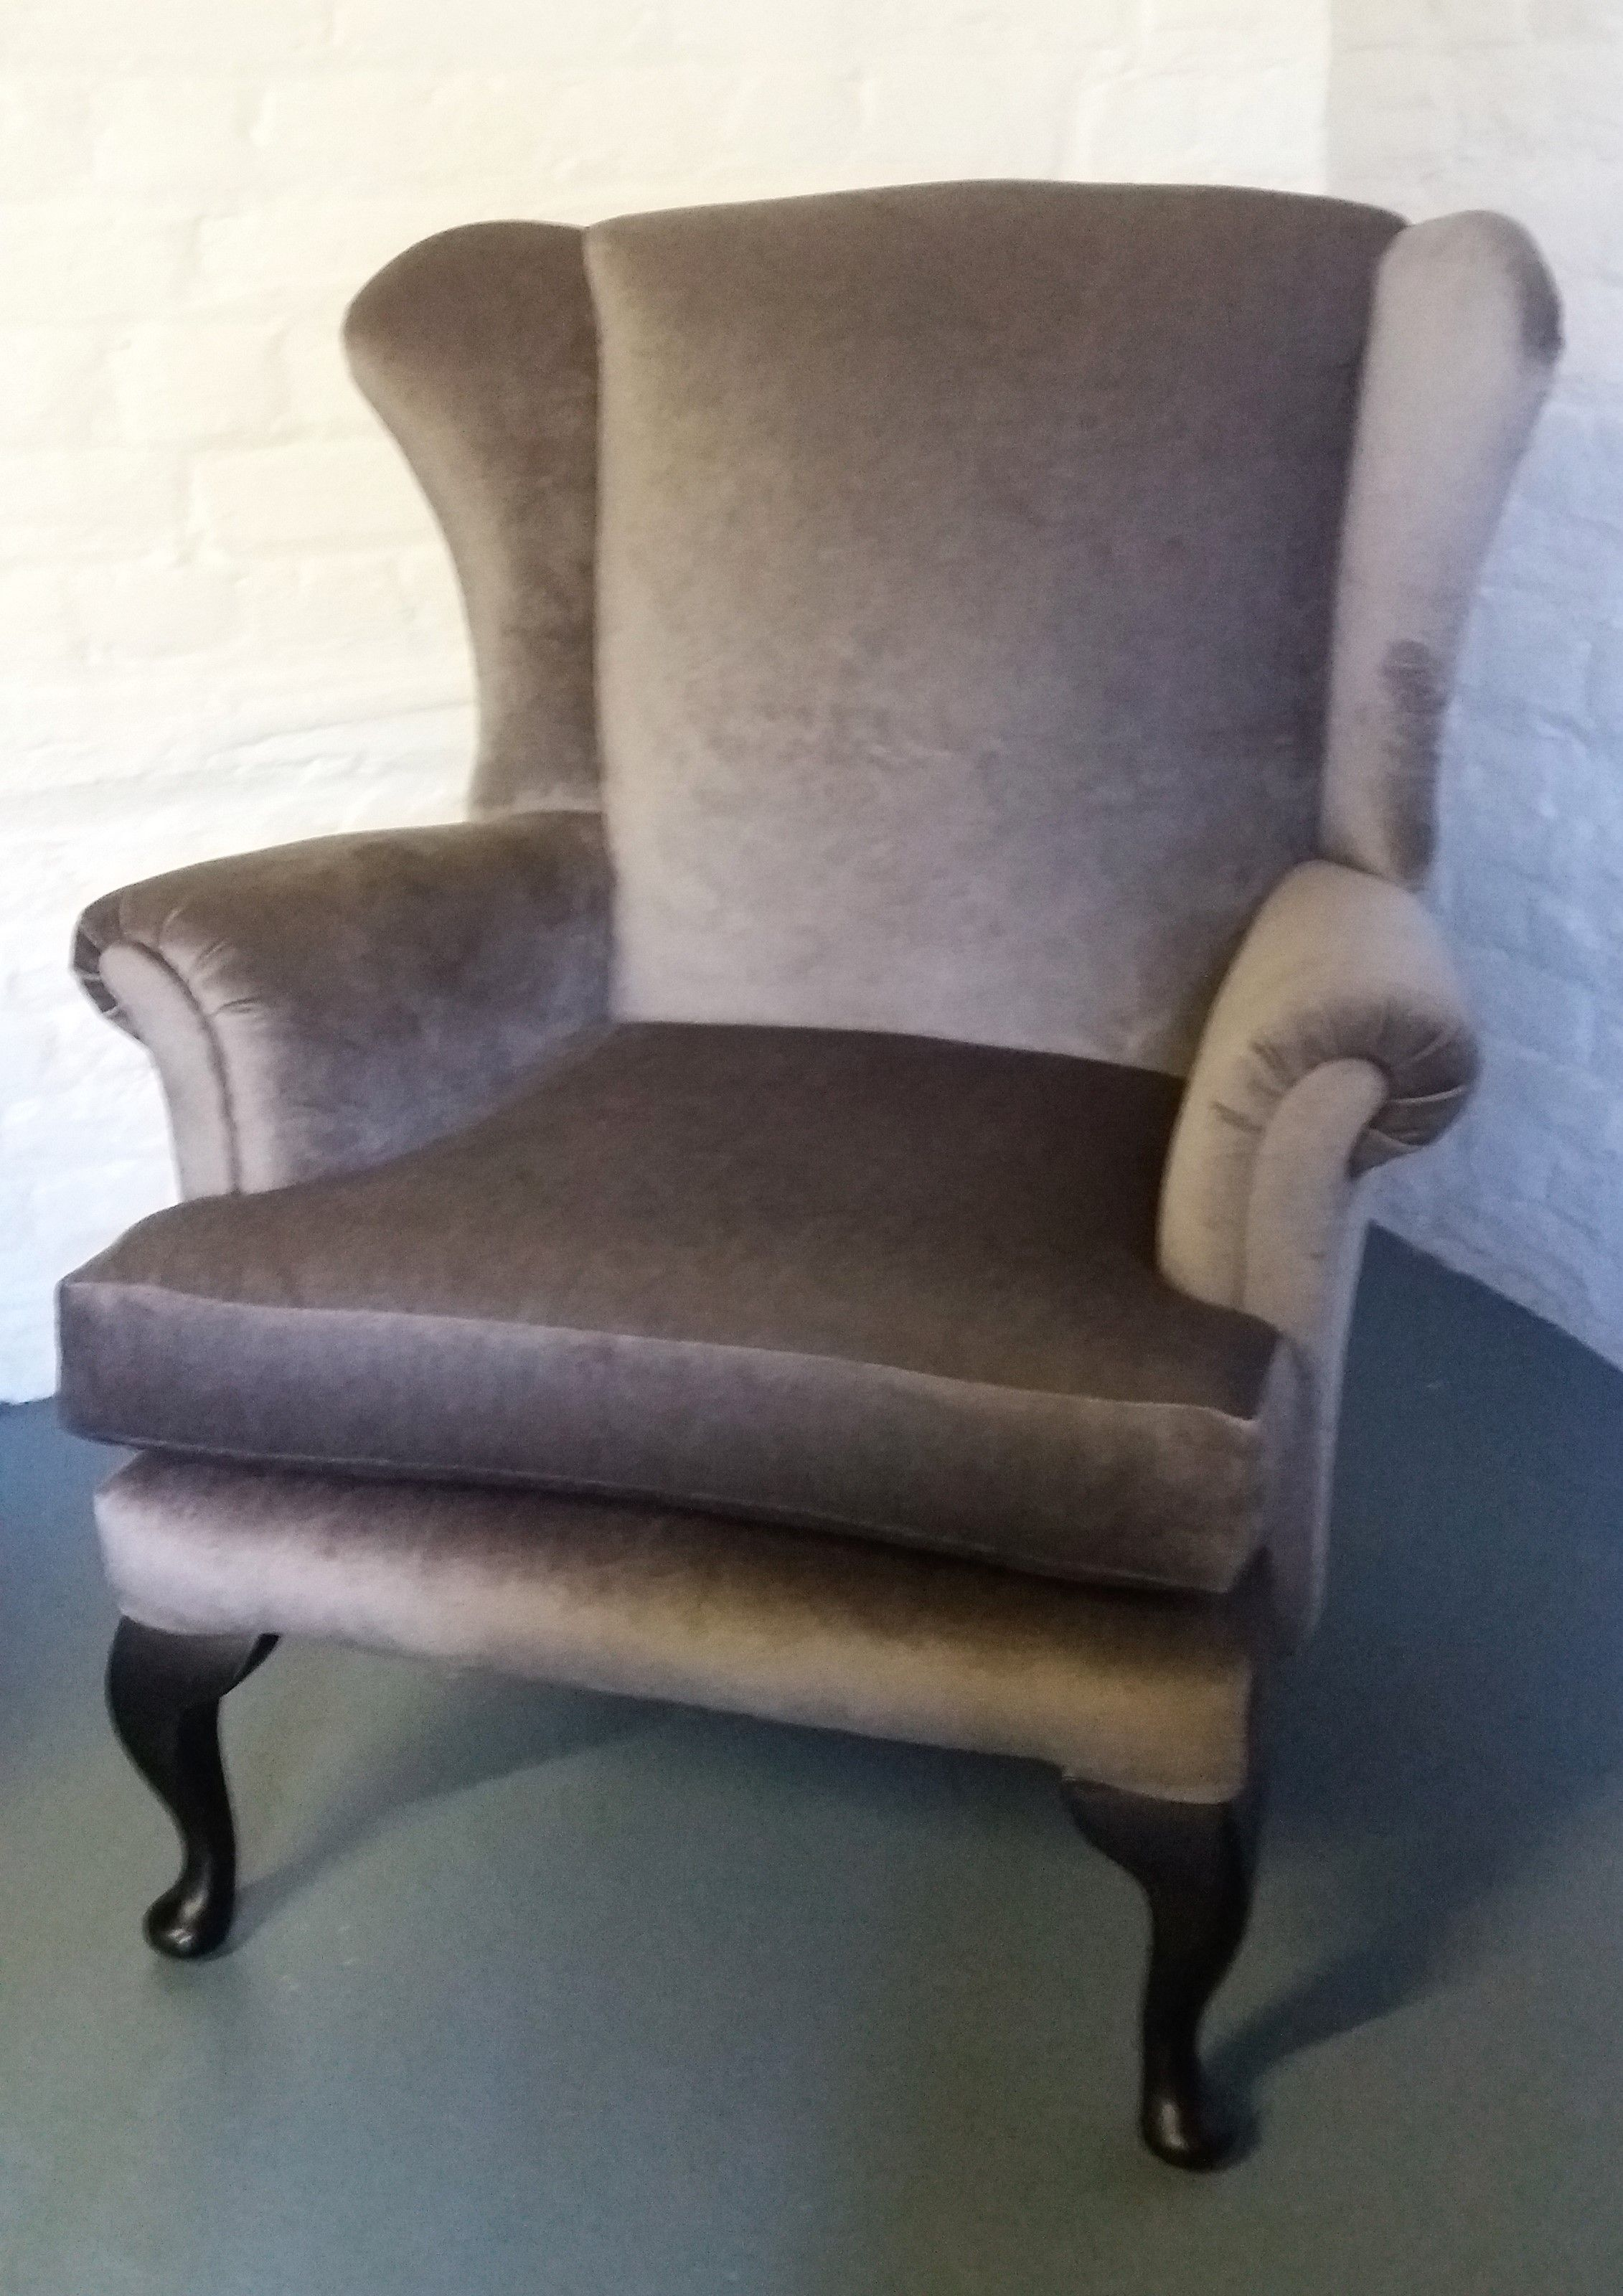 Beautiful queen anne style chair reupholstered in a soft